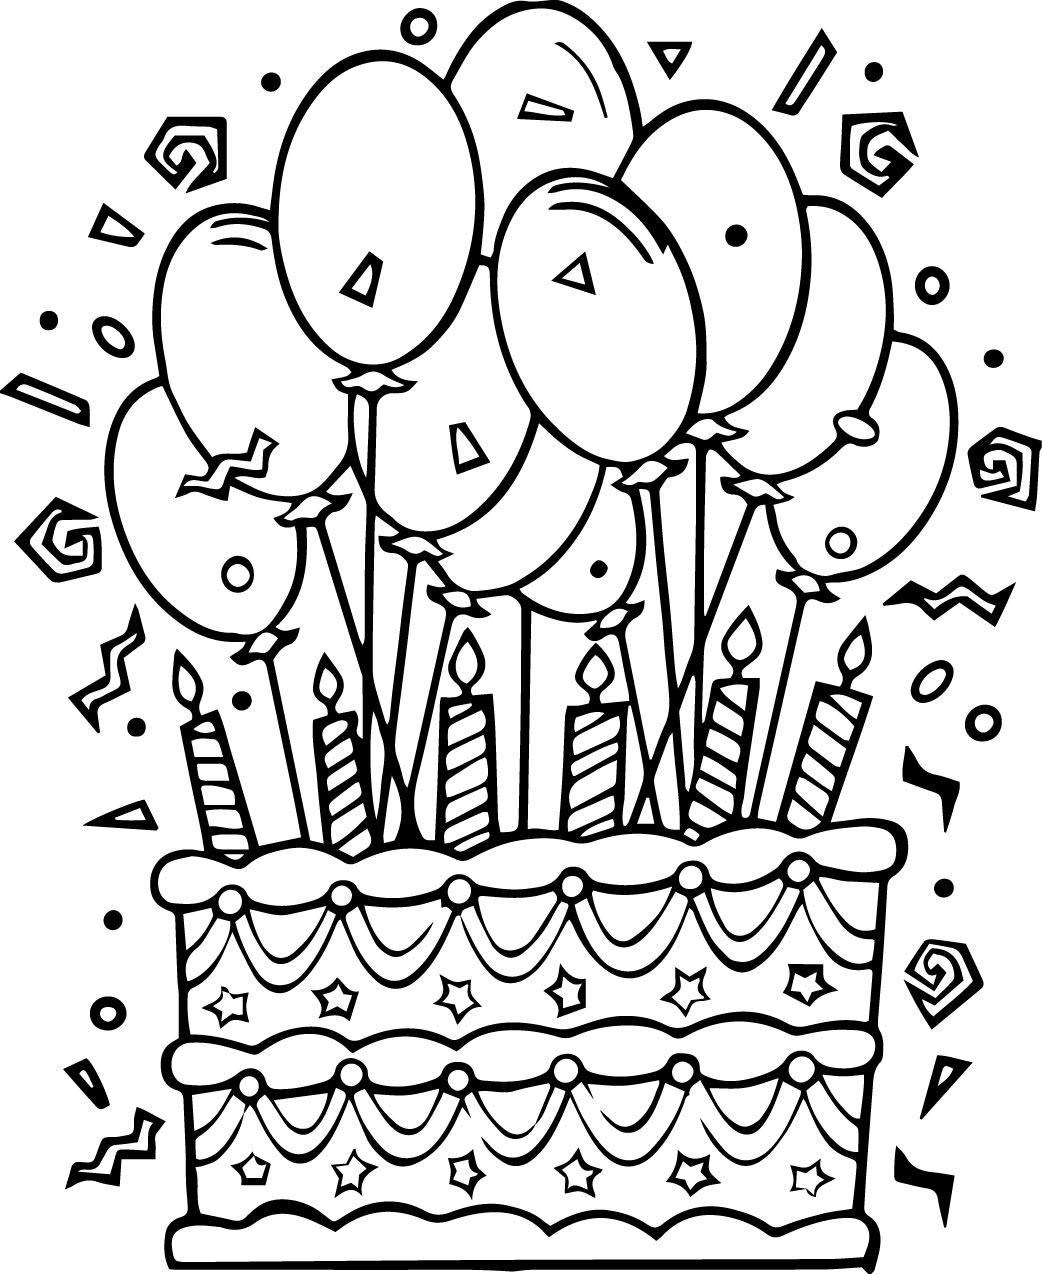 simple cake coloring pages birthday cake coloring pages coloringall pages cake coloring simple